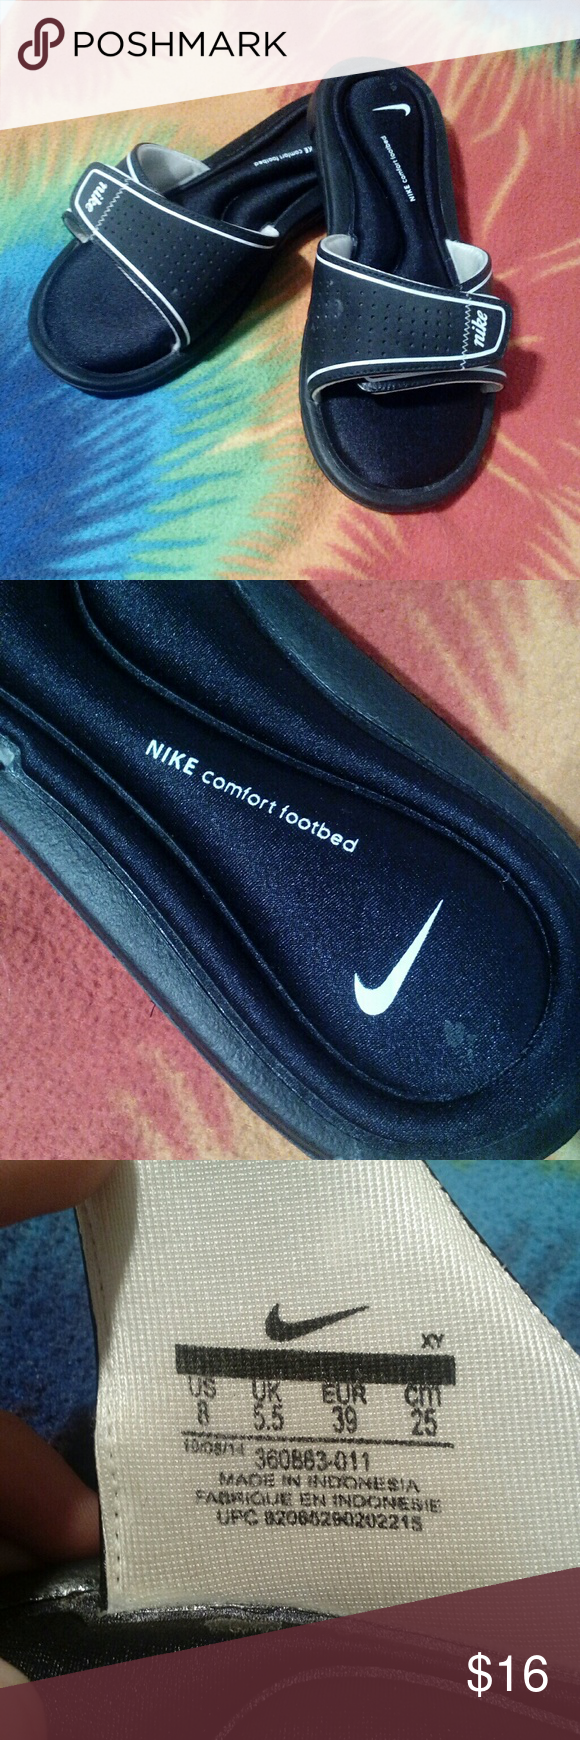 NIKE Comfort slides Great condition, super comfortable NIKE slides. Size 8, Runs small. Nike Shoes Sandals